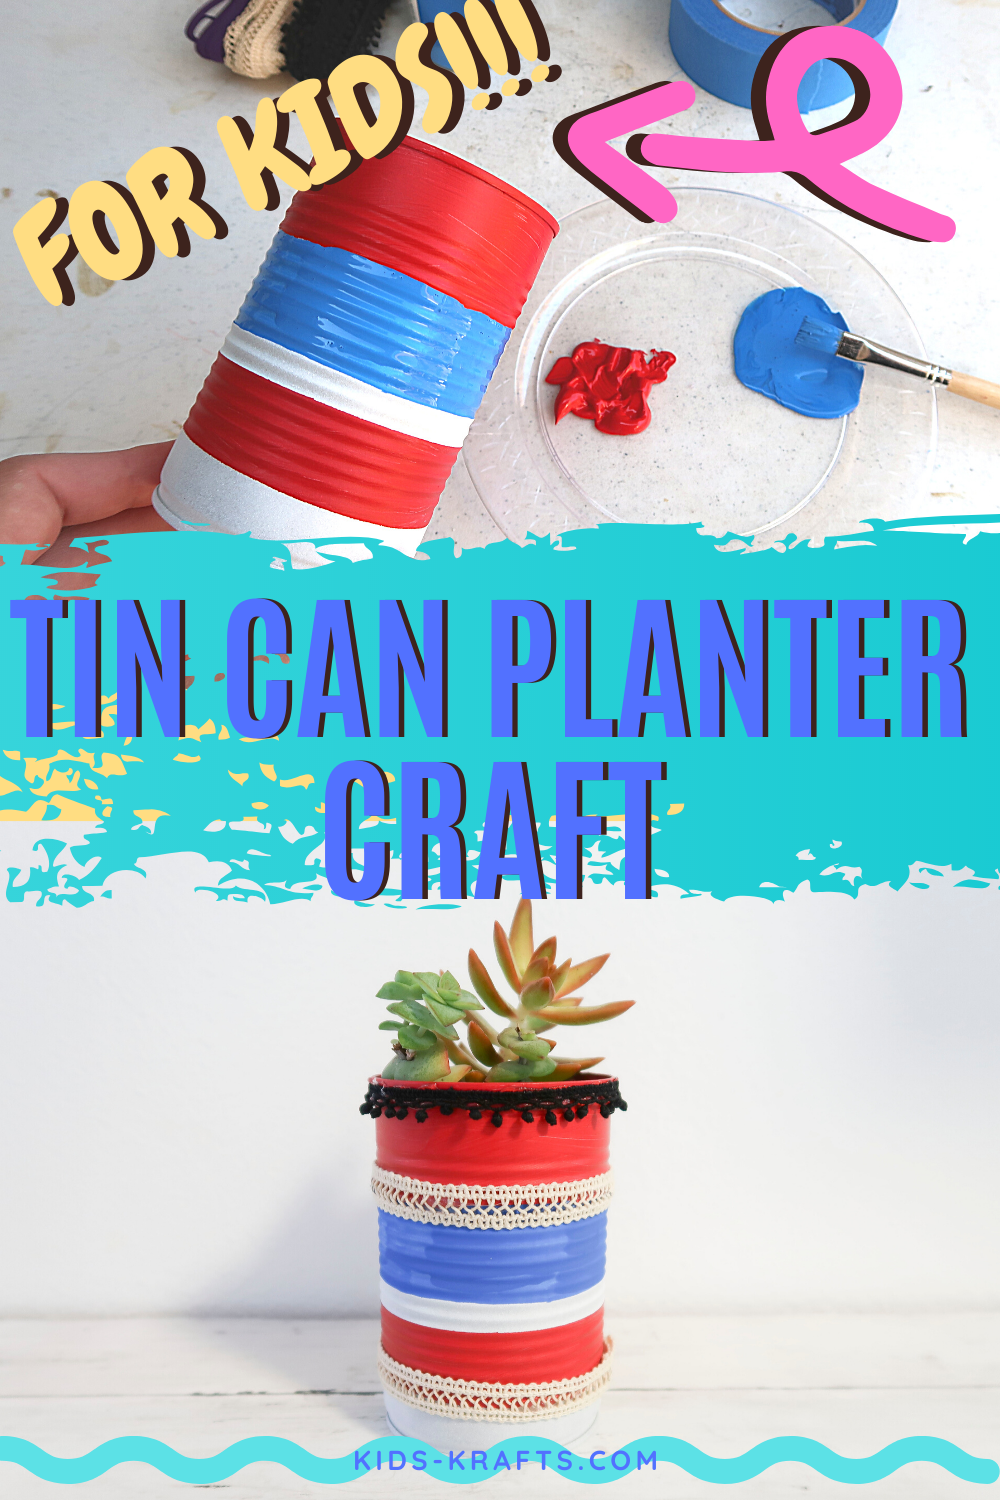 Tin Can Planter Craft, Simple Recycle Craft for kids. Crafting for kids using recycled materials. #crafting #kidscrafts #kidcraft #summerCraft